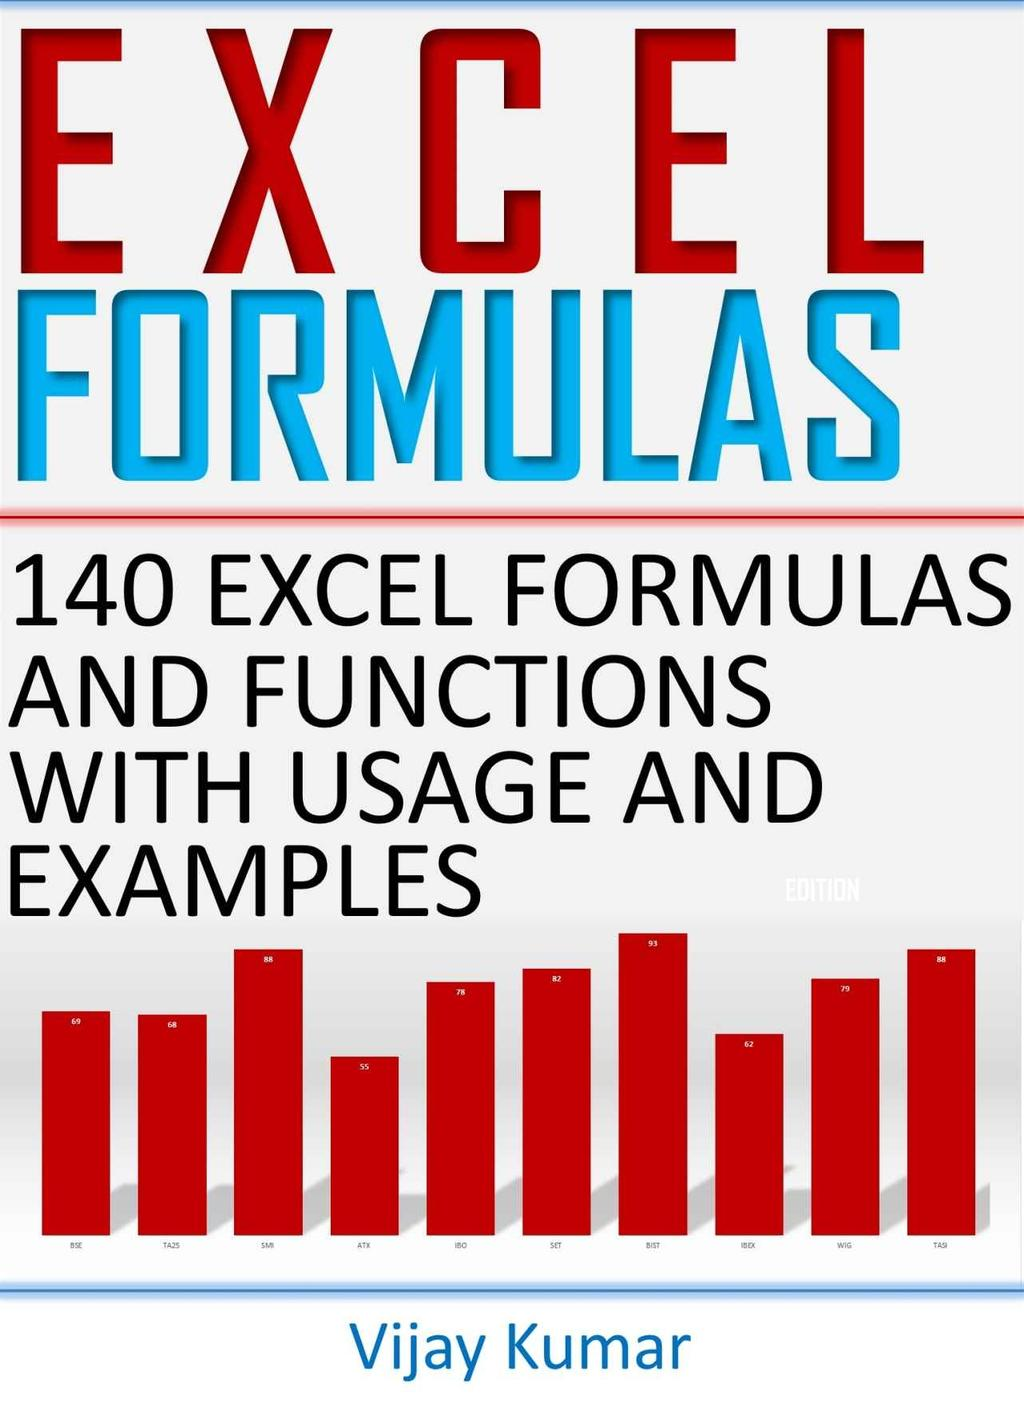 Excel formulas 140 excel formulas and functions with usage and transcription ibookread PDF